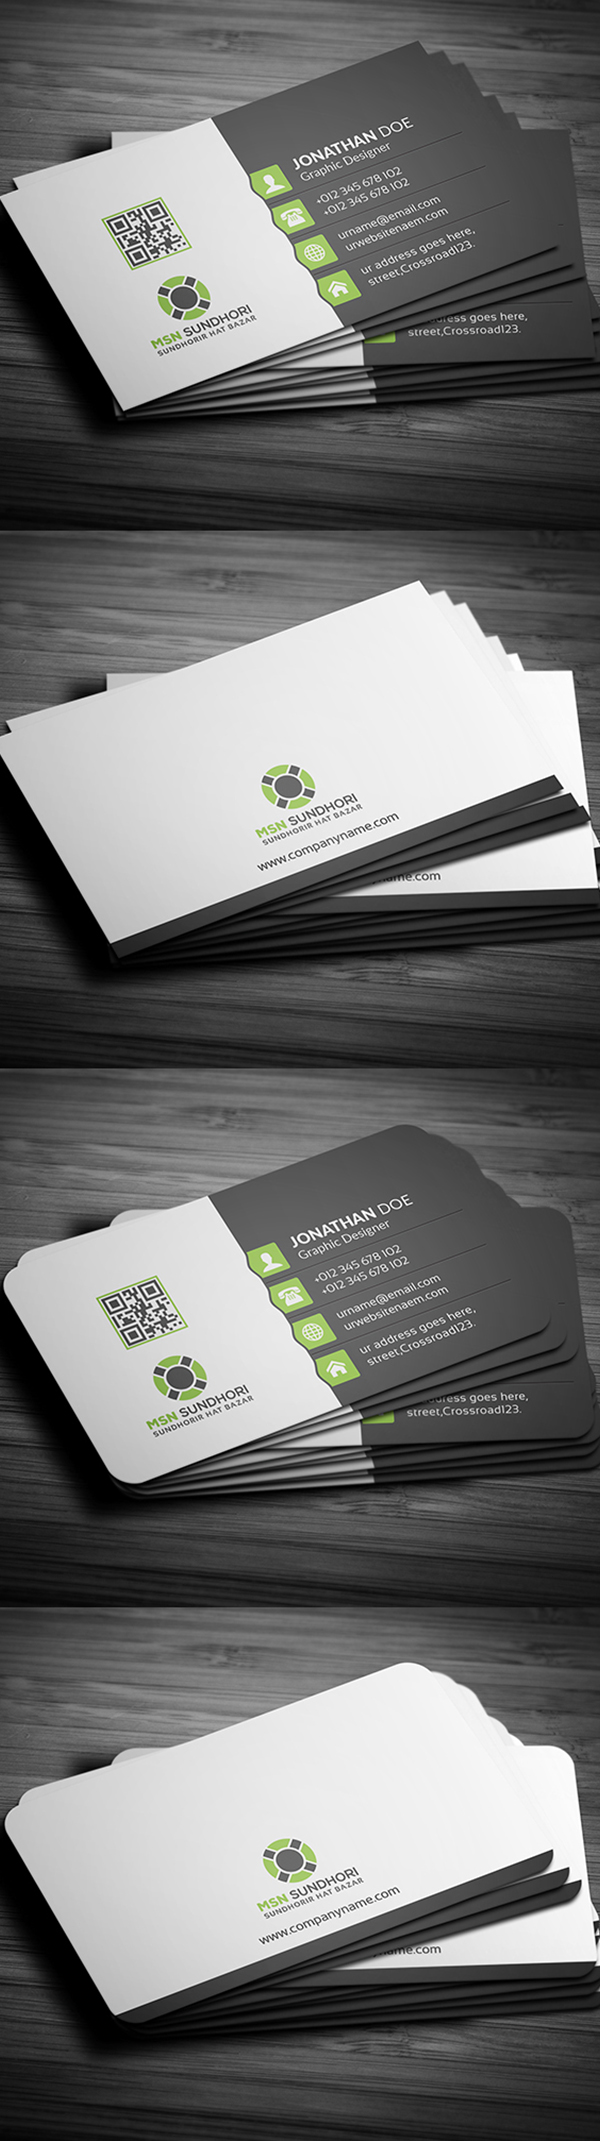 19 Business Card Design